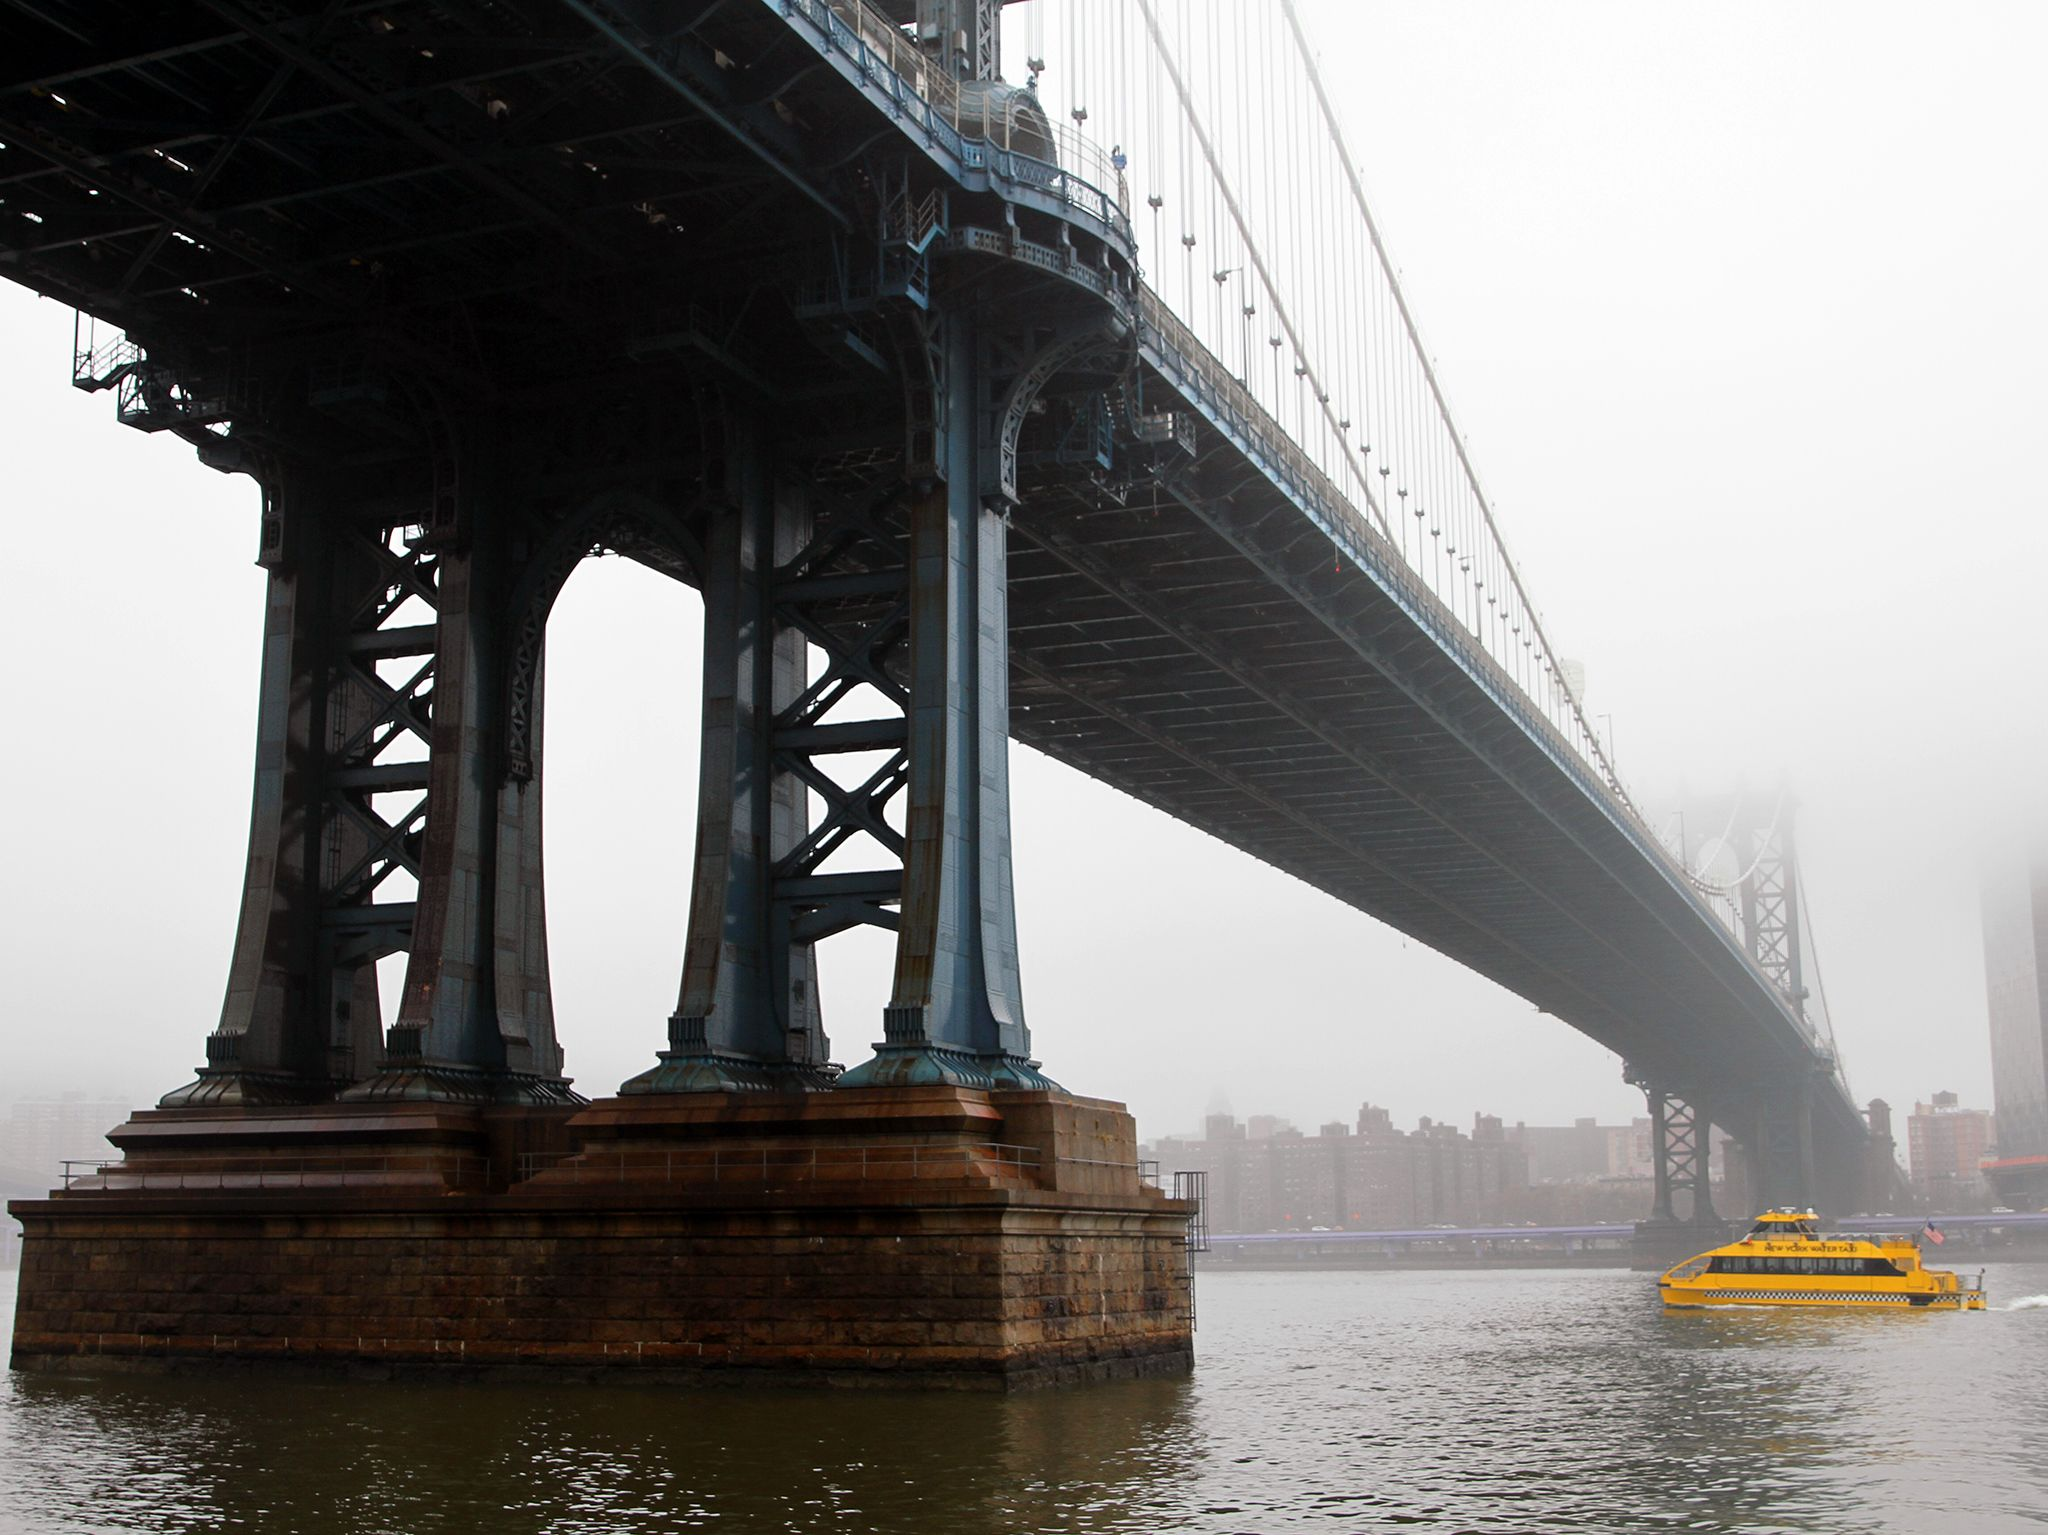 A New York Water Taxi passes under Manhattan Bridge as fog encloses the city. This image is from... [Photo of the day - می 2019]